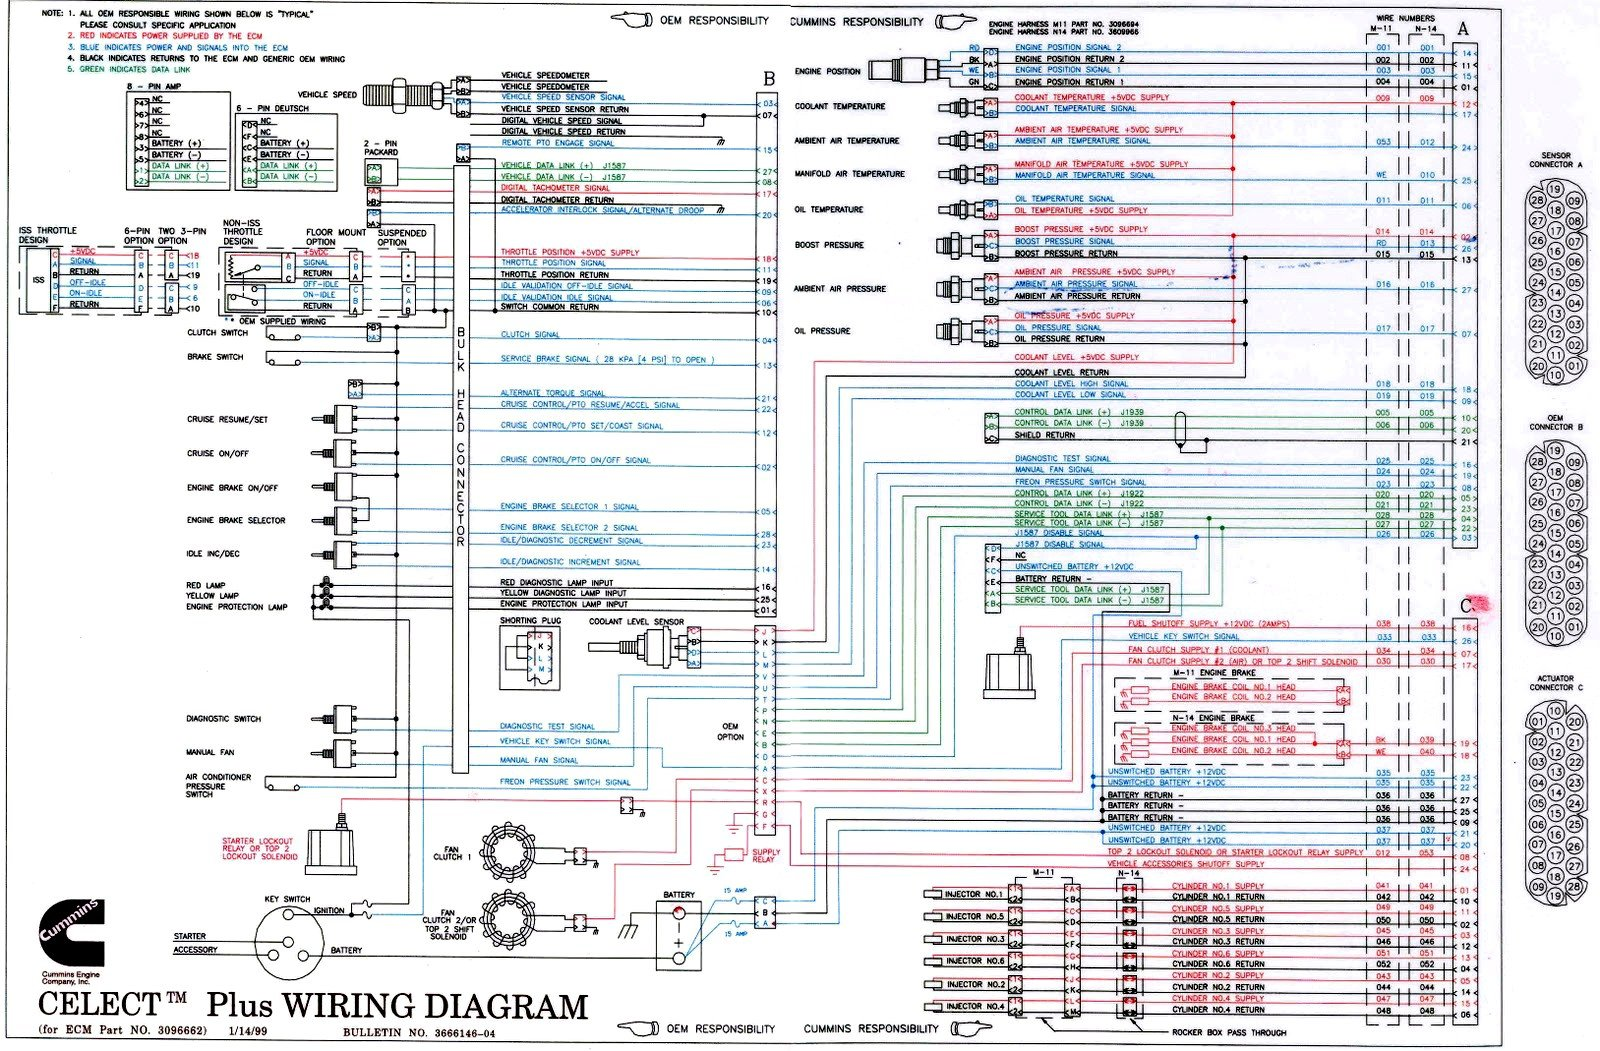 celect plus wiring diagram i have a fl112 day cab truck the fan clutch is staying on ... celect plus wiring diagram volvo